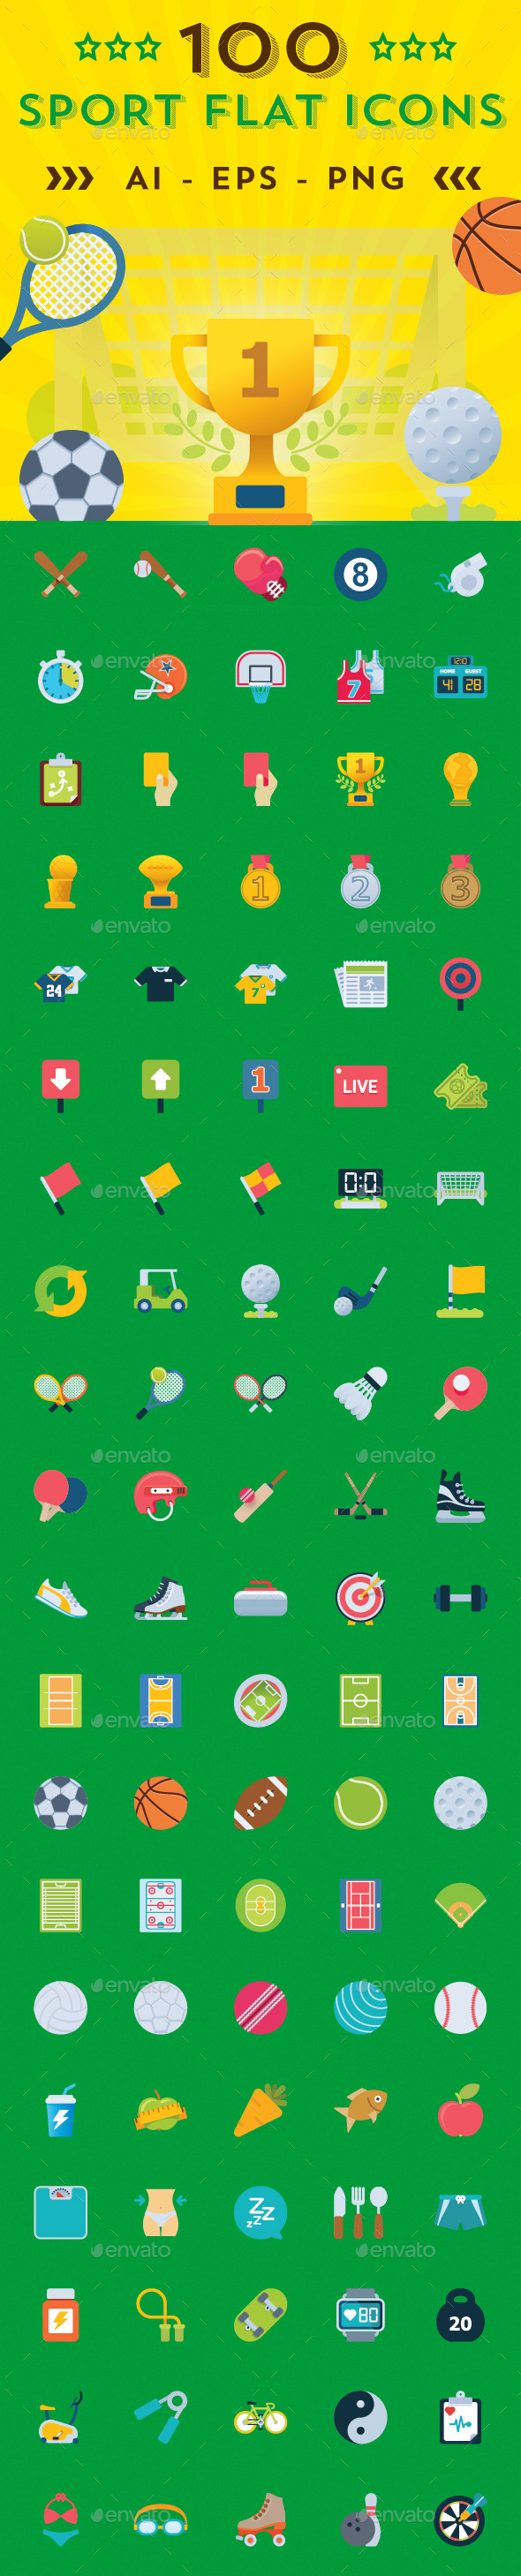 Sports Shop Flat Icons - Icons